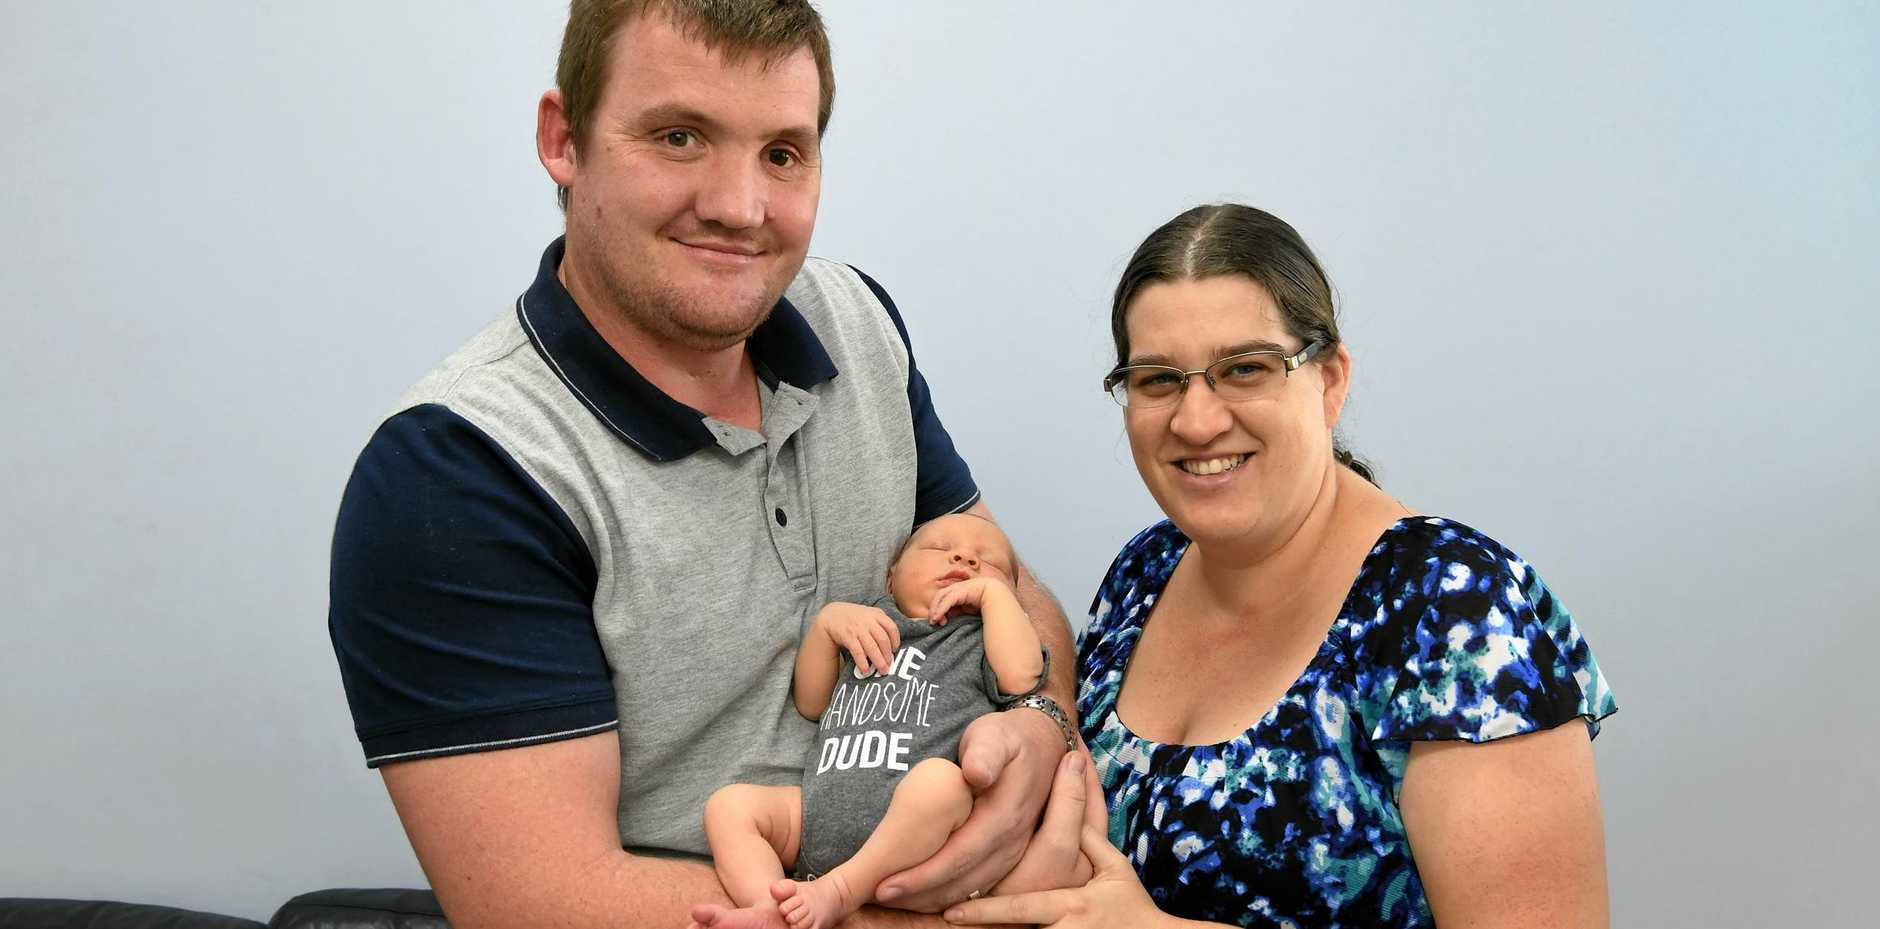 BABY BOY: Konrad Earl Herbener weighed 3035g when he was born at the Bundaberg Hospital last Monday, just a week before the Duchess of Cambridge gave birth to her third son.  Konrad's proud parents are Jason and Yasmin Herbener. His grandparents are Francis and Marilyn Herbener, Christine Olsen and David Colquhoun.